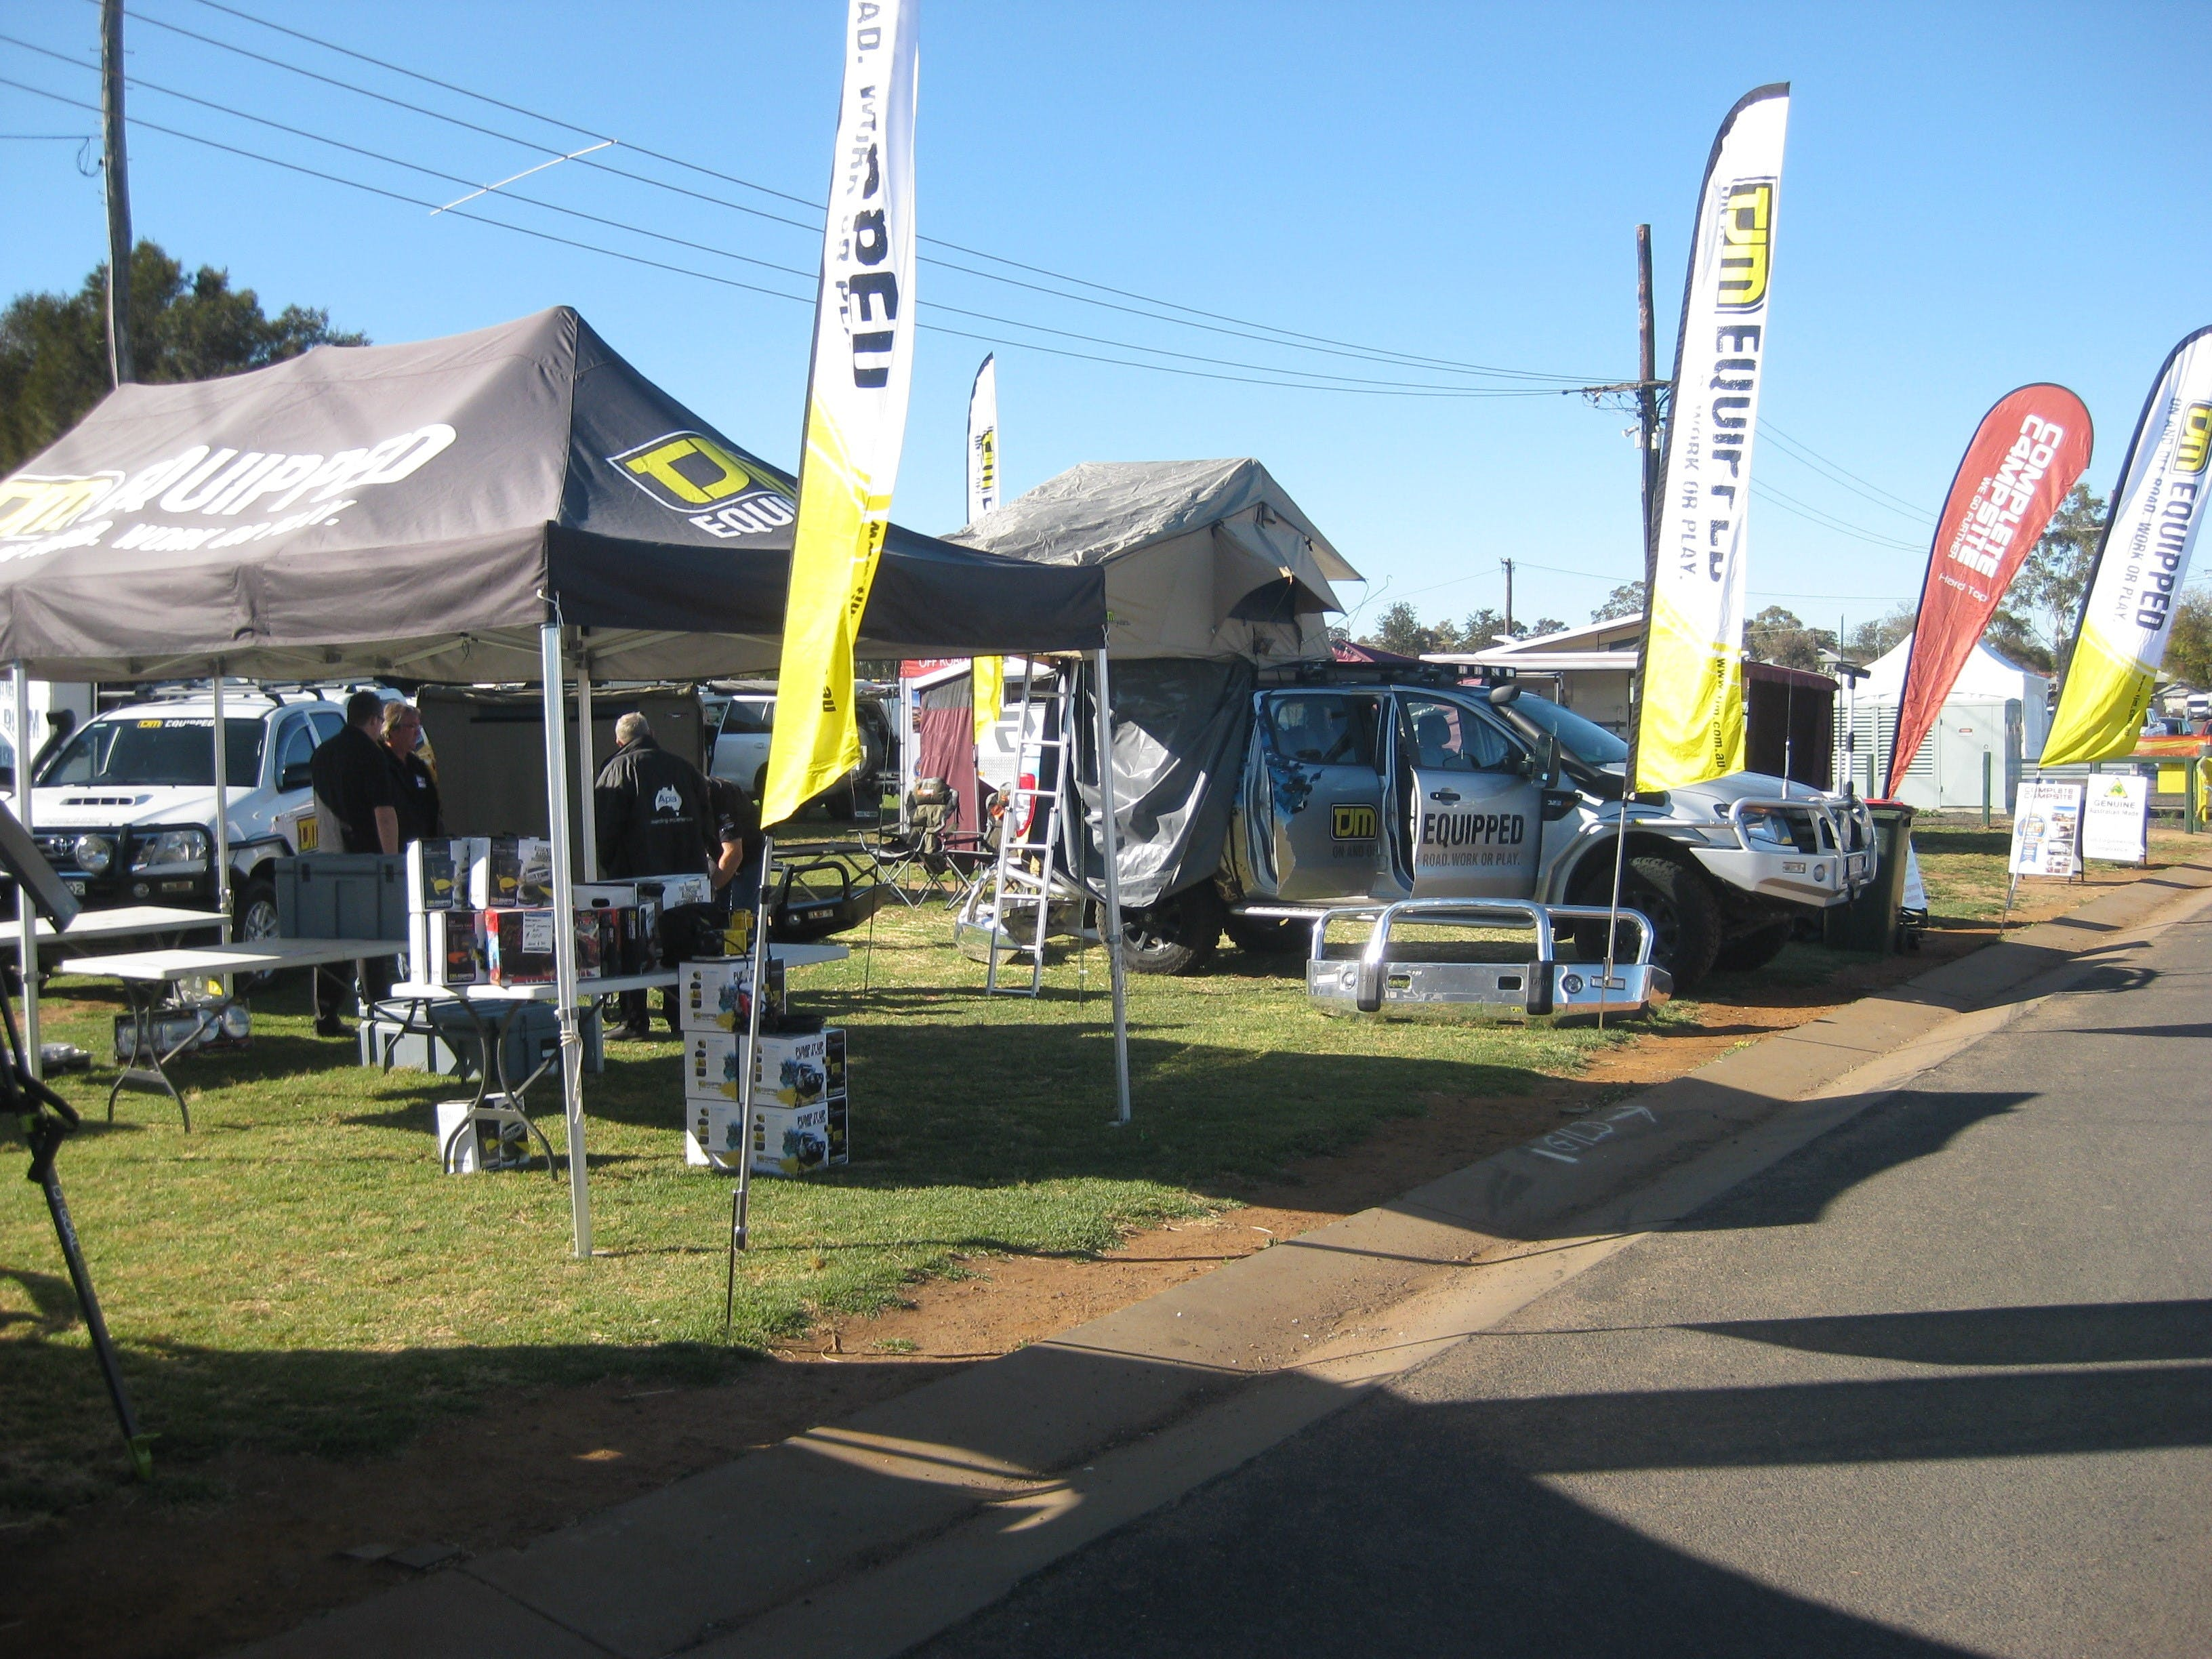 Orana Caravan Camping 4WD Fish and Boat Show - Hotel Accommodation